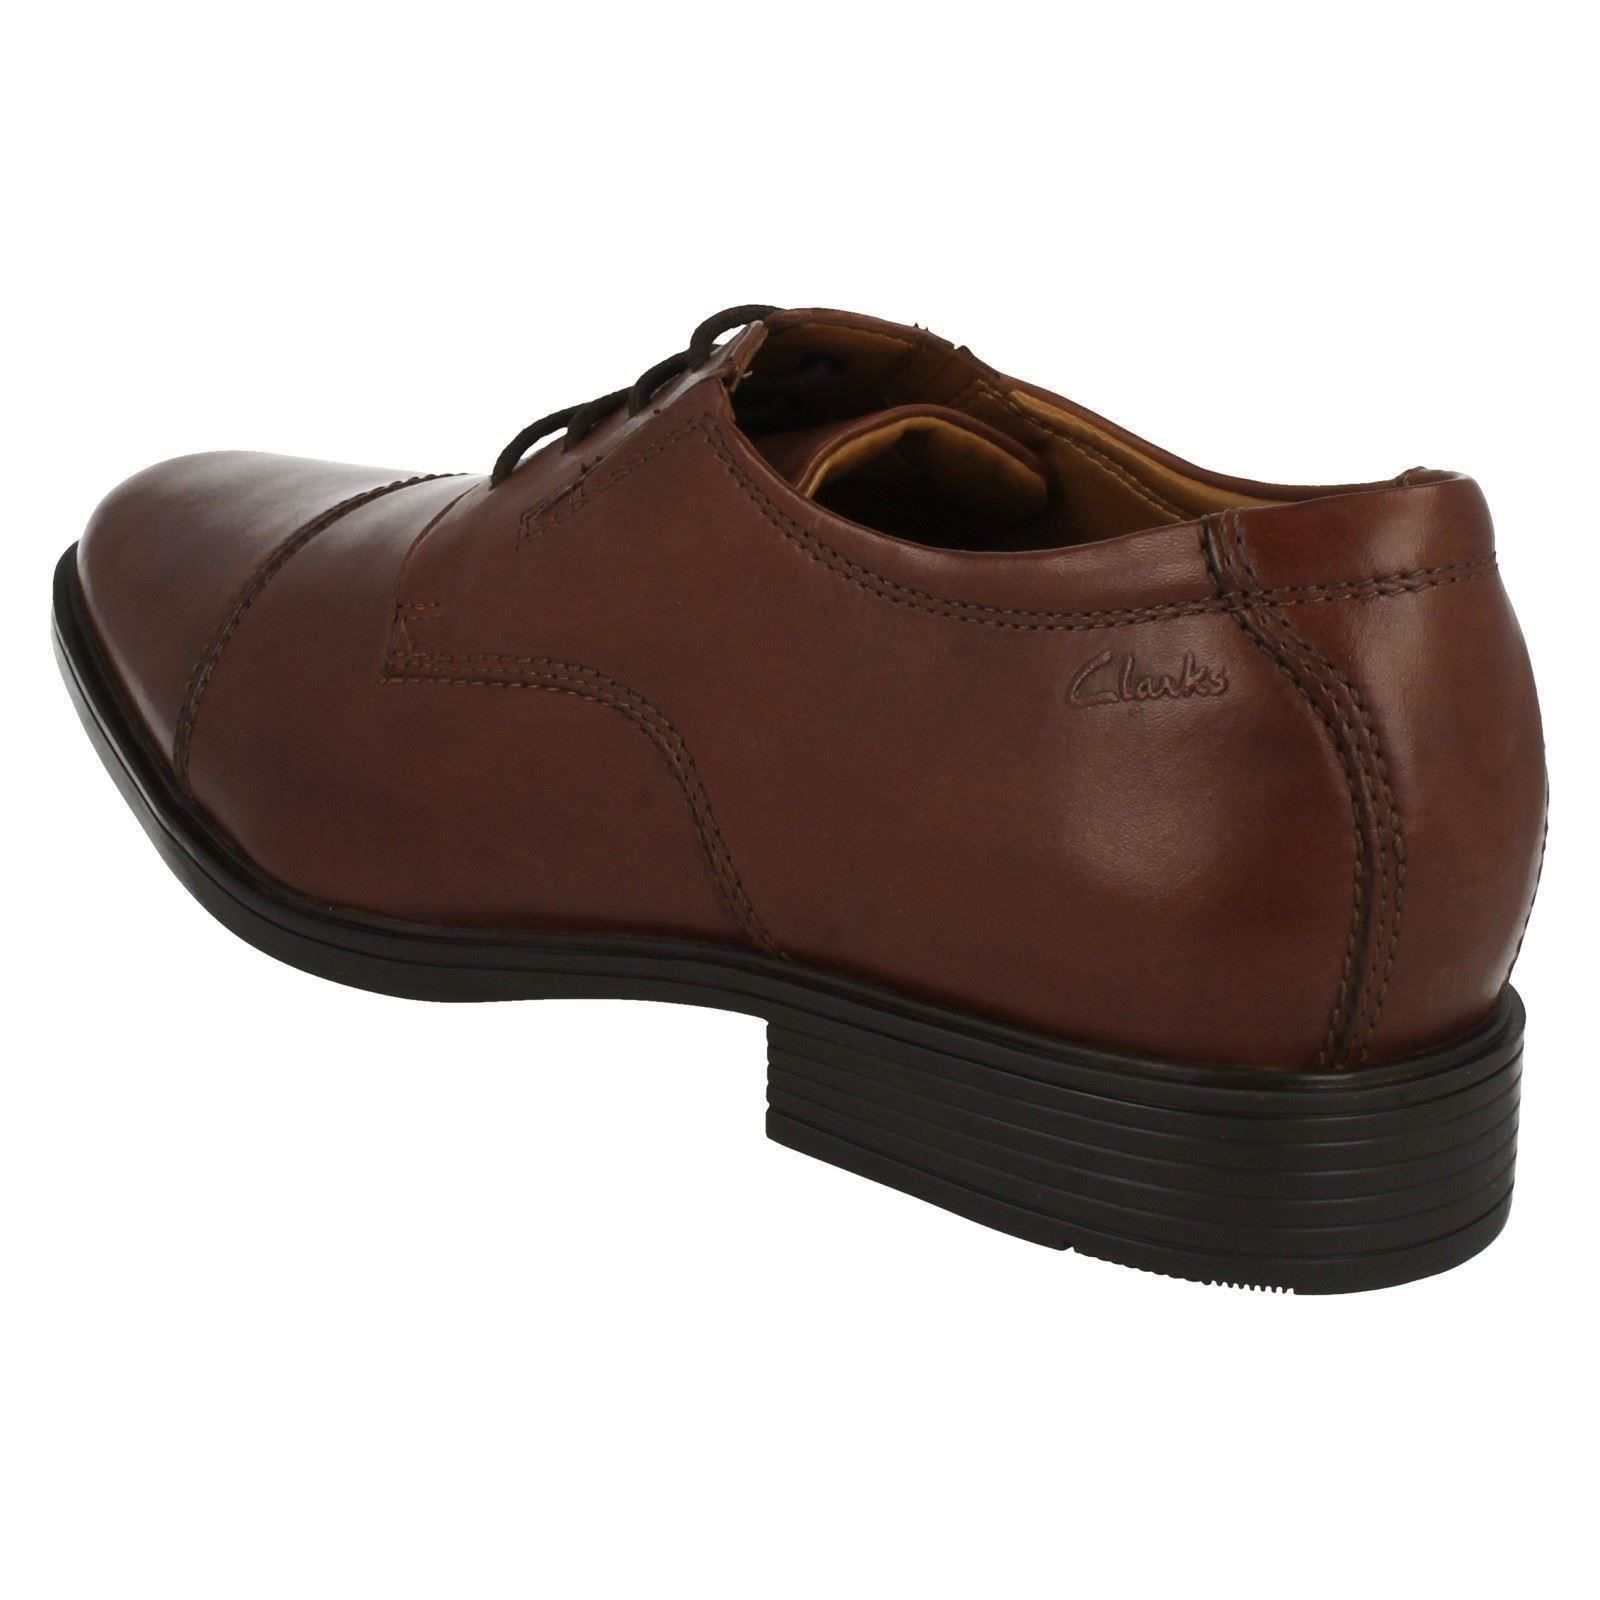 Mens-Clarks-Formal-Lace-Up-Shoes-Tilden-Cap thumbnail 14